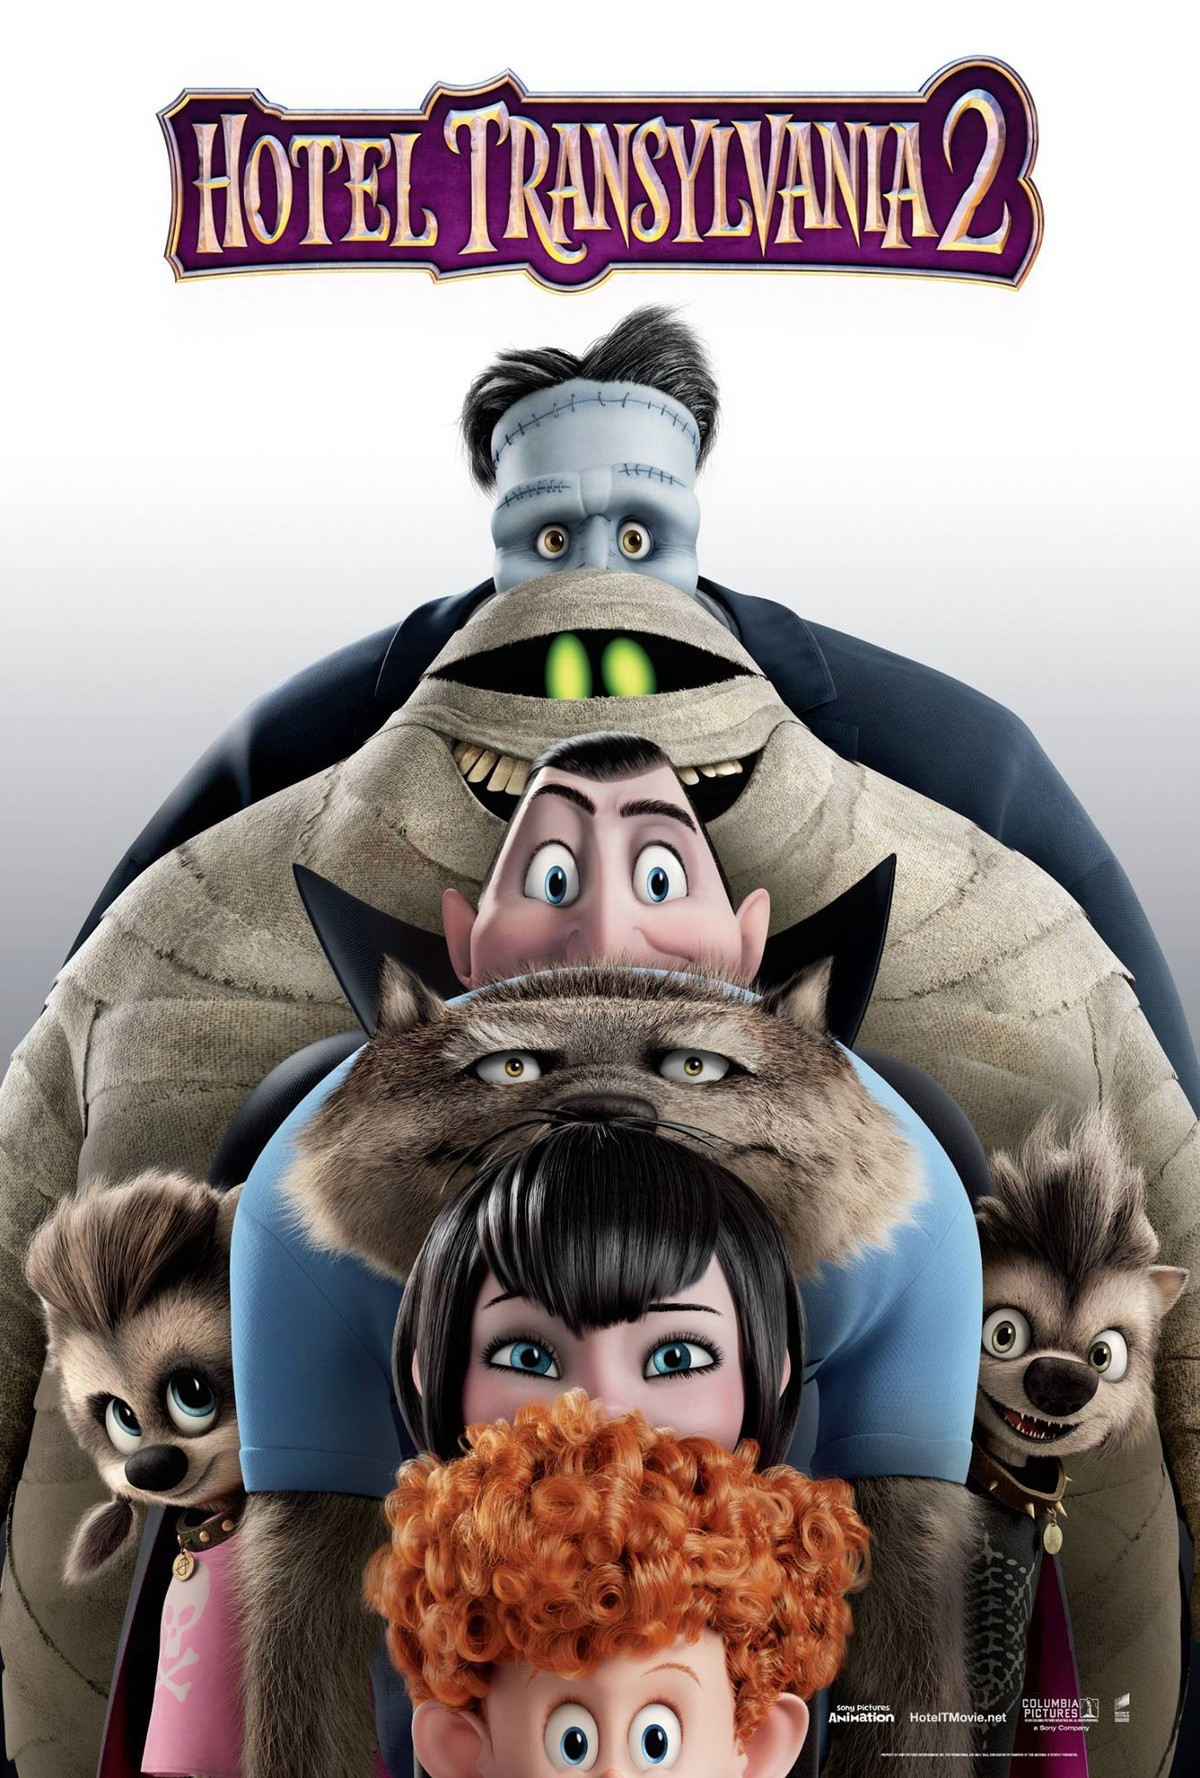 A New Poster For Hotel Transylvania 2